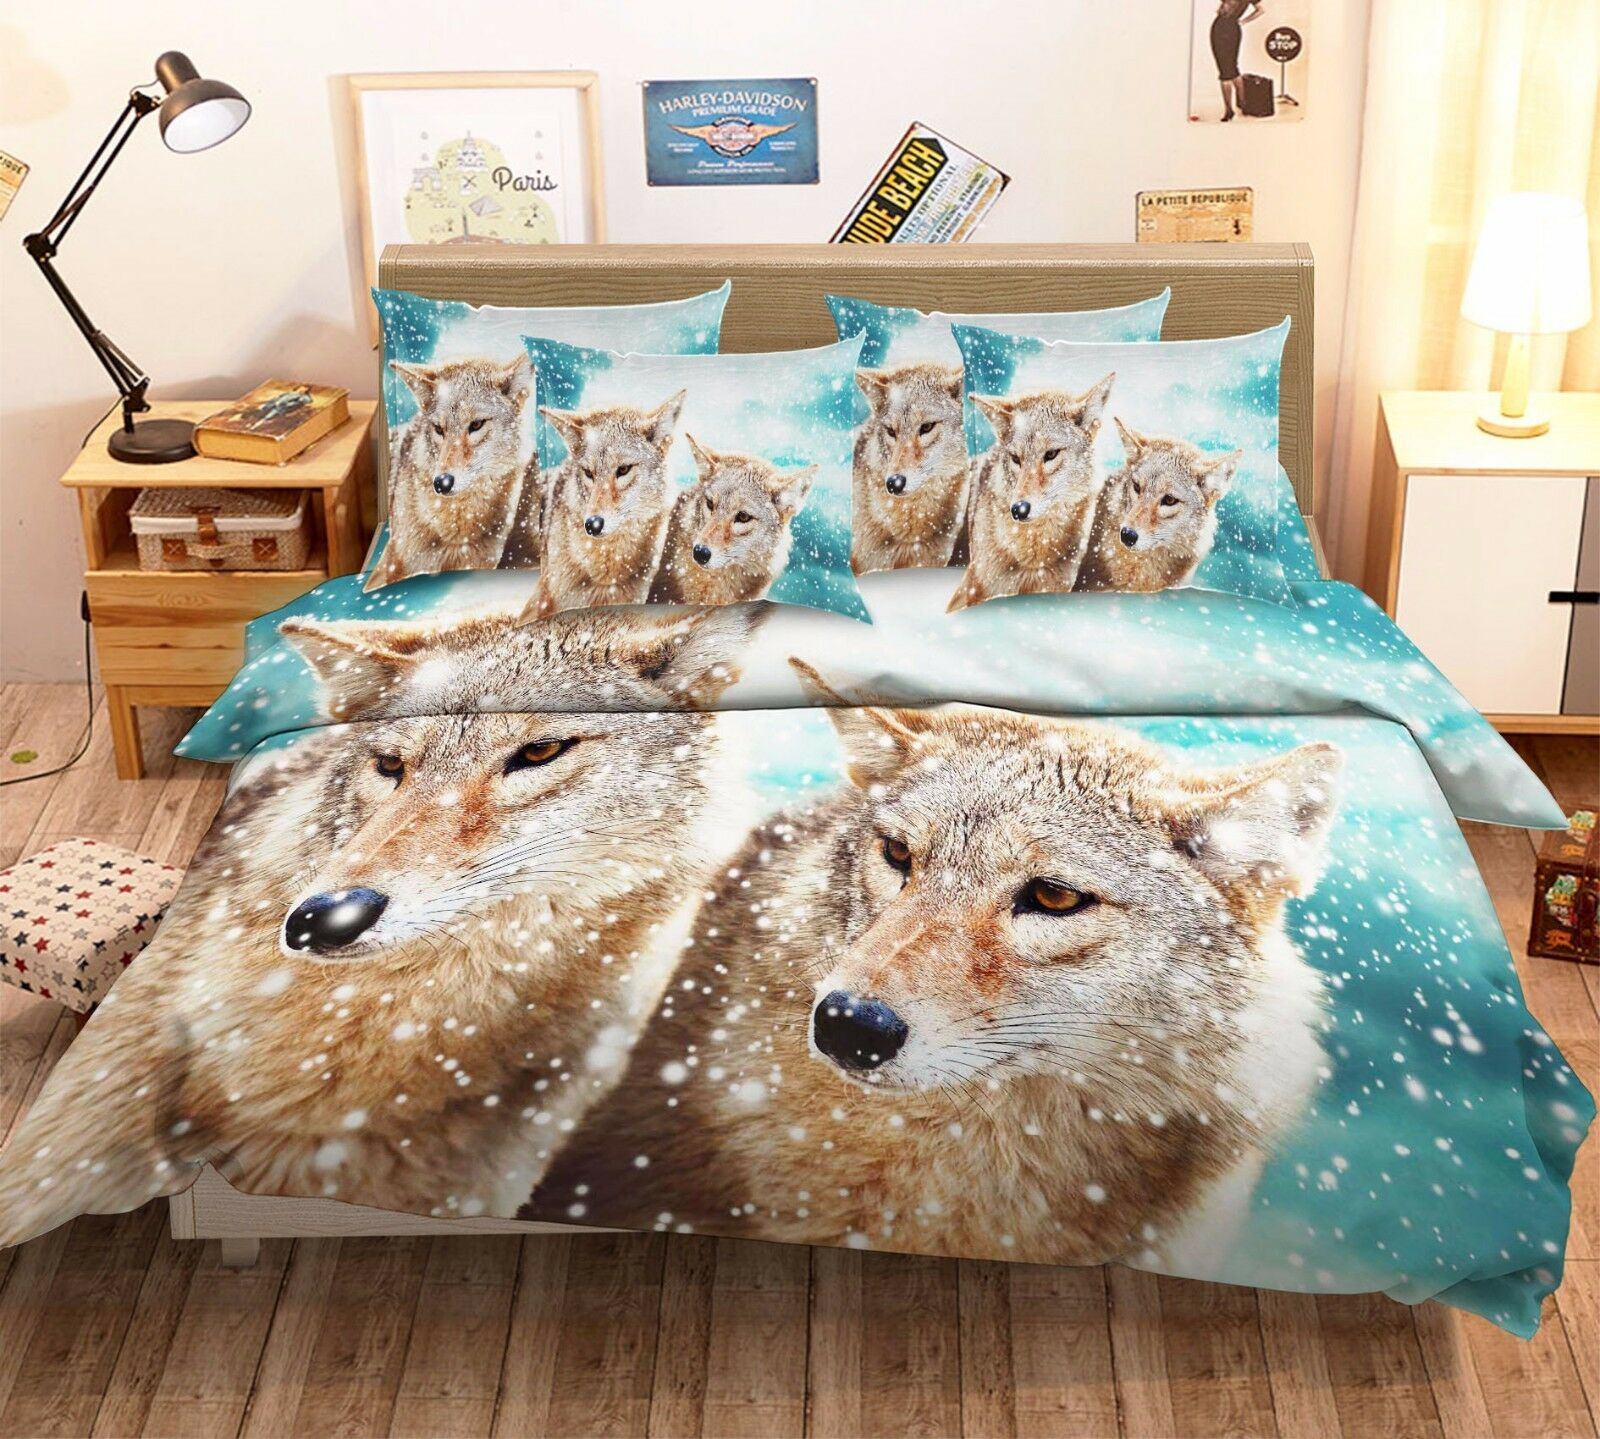 3D Snowing Animal 816 Bed Pillowcases Quilt Duvet Cover Set Single Queen UK Kyra